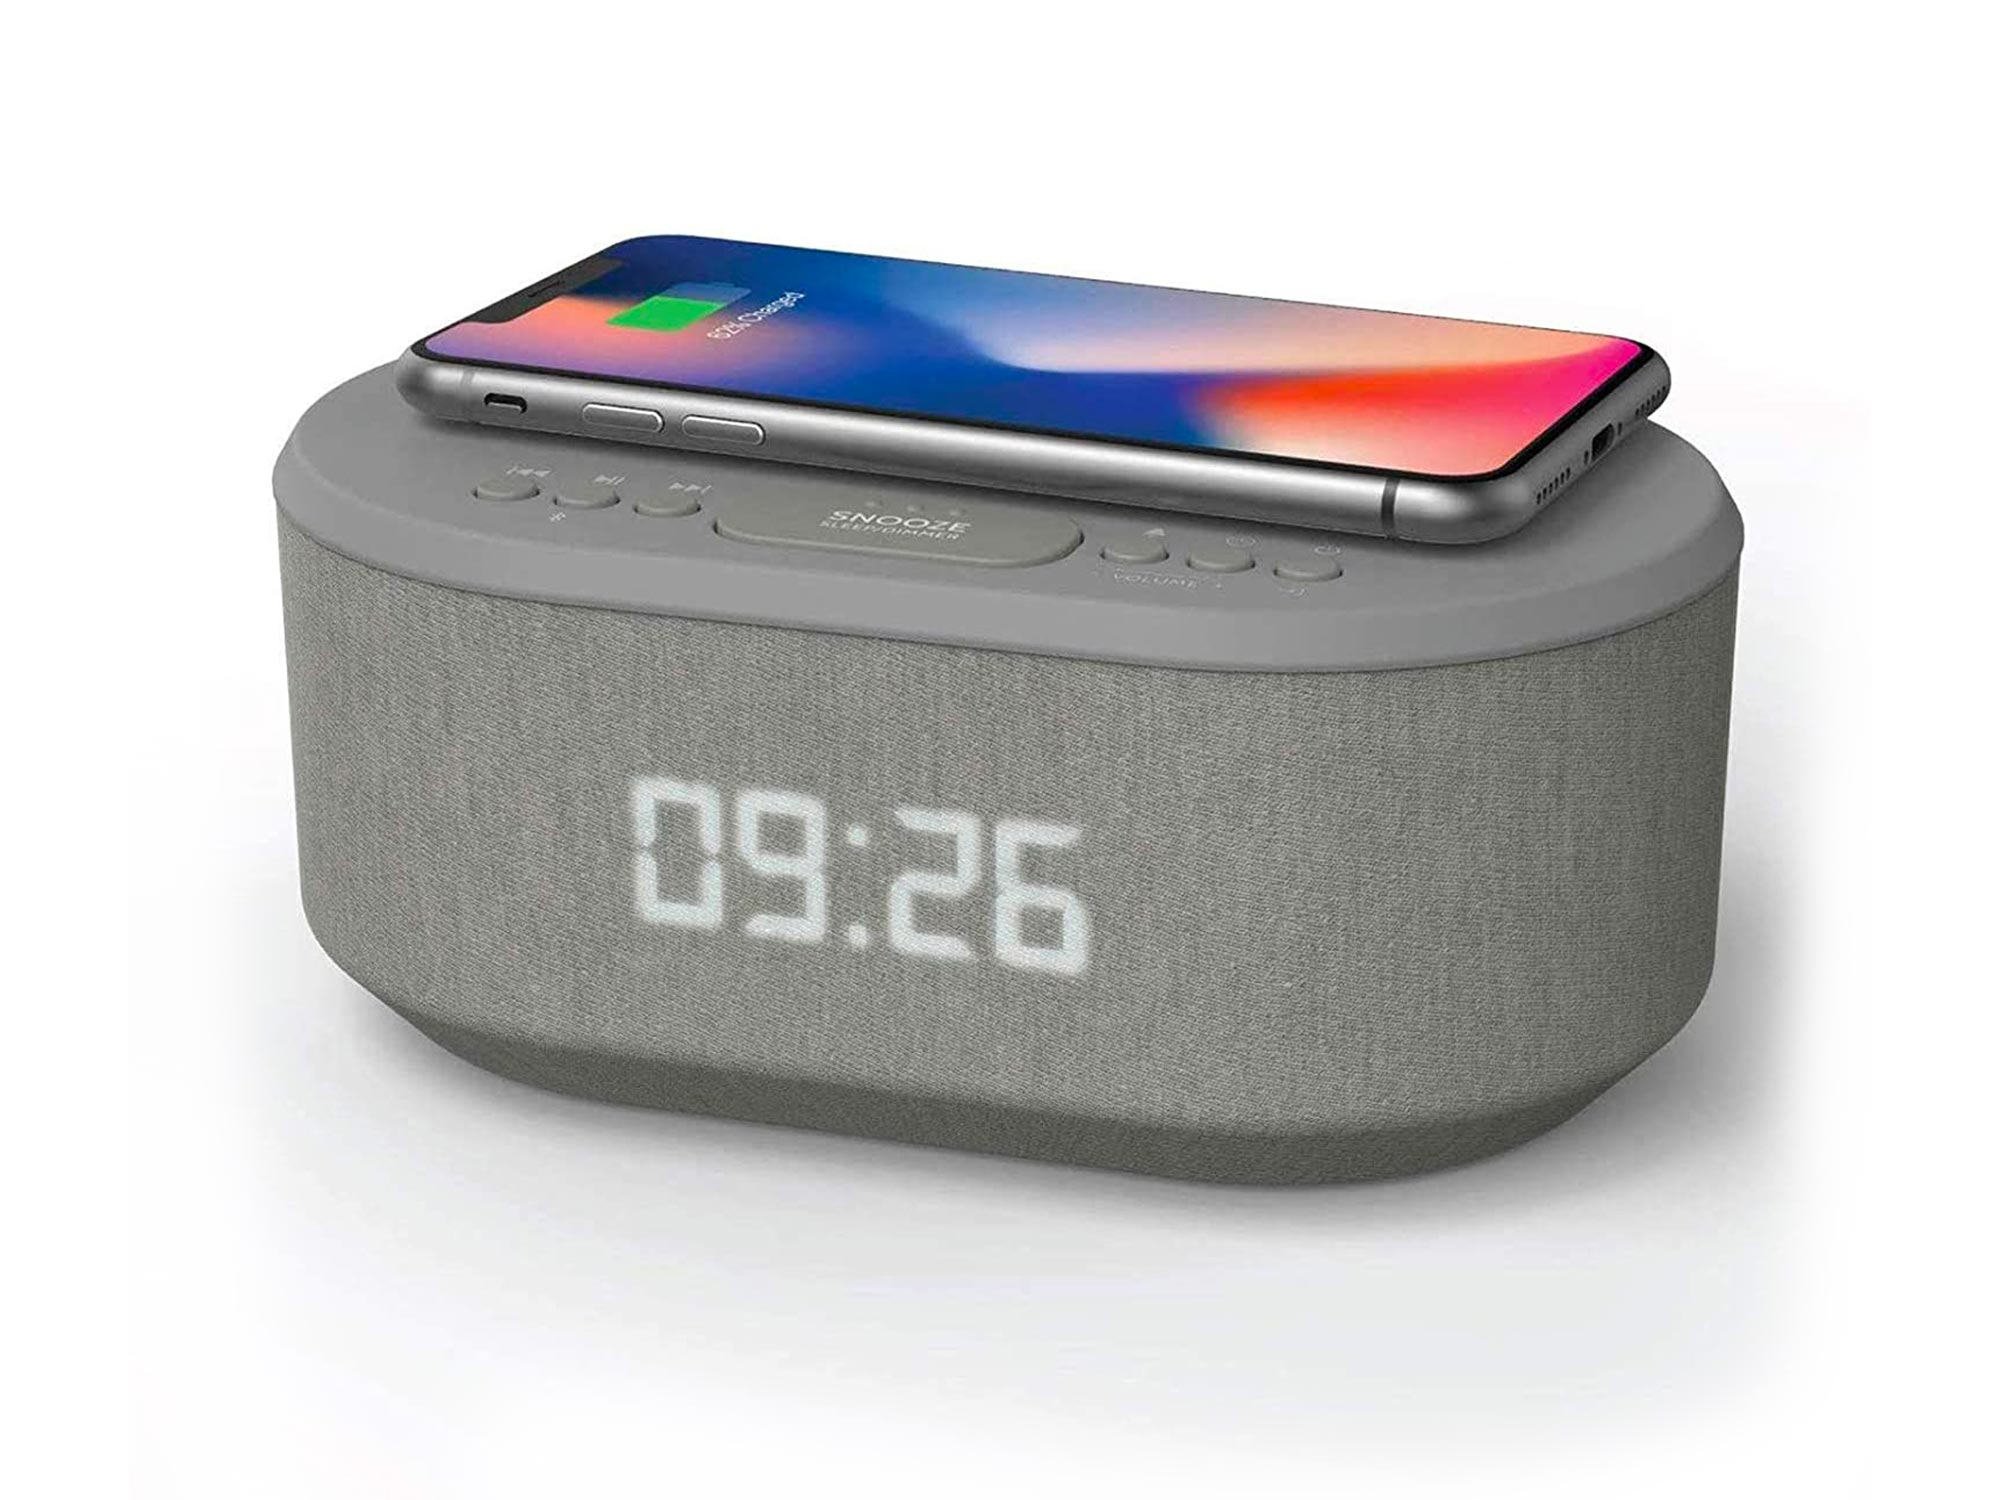 i-box Bedside Radio Alarm Clock with USB Charger, Bluetooth Speaker, QI Wireless Charging, Dual Alarm Dimmable LED Display